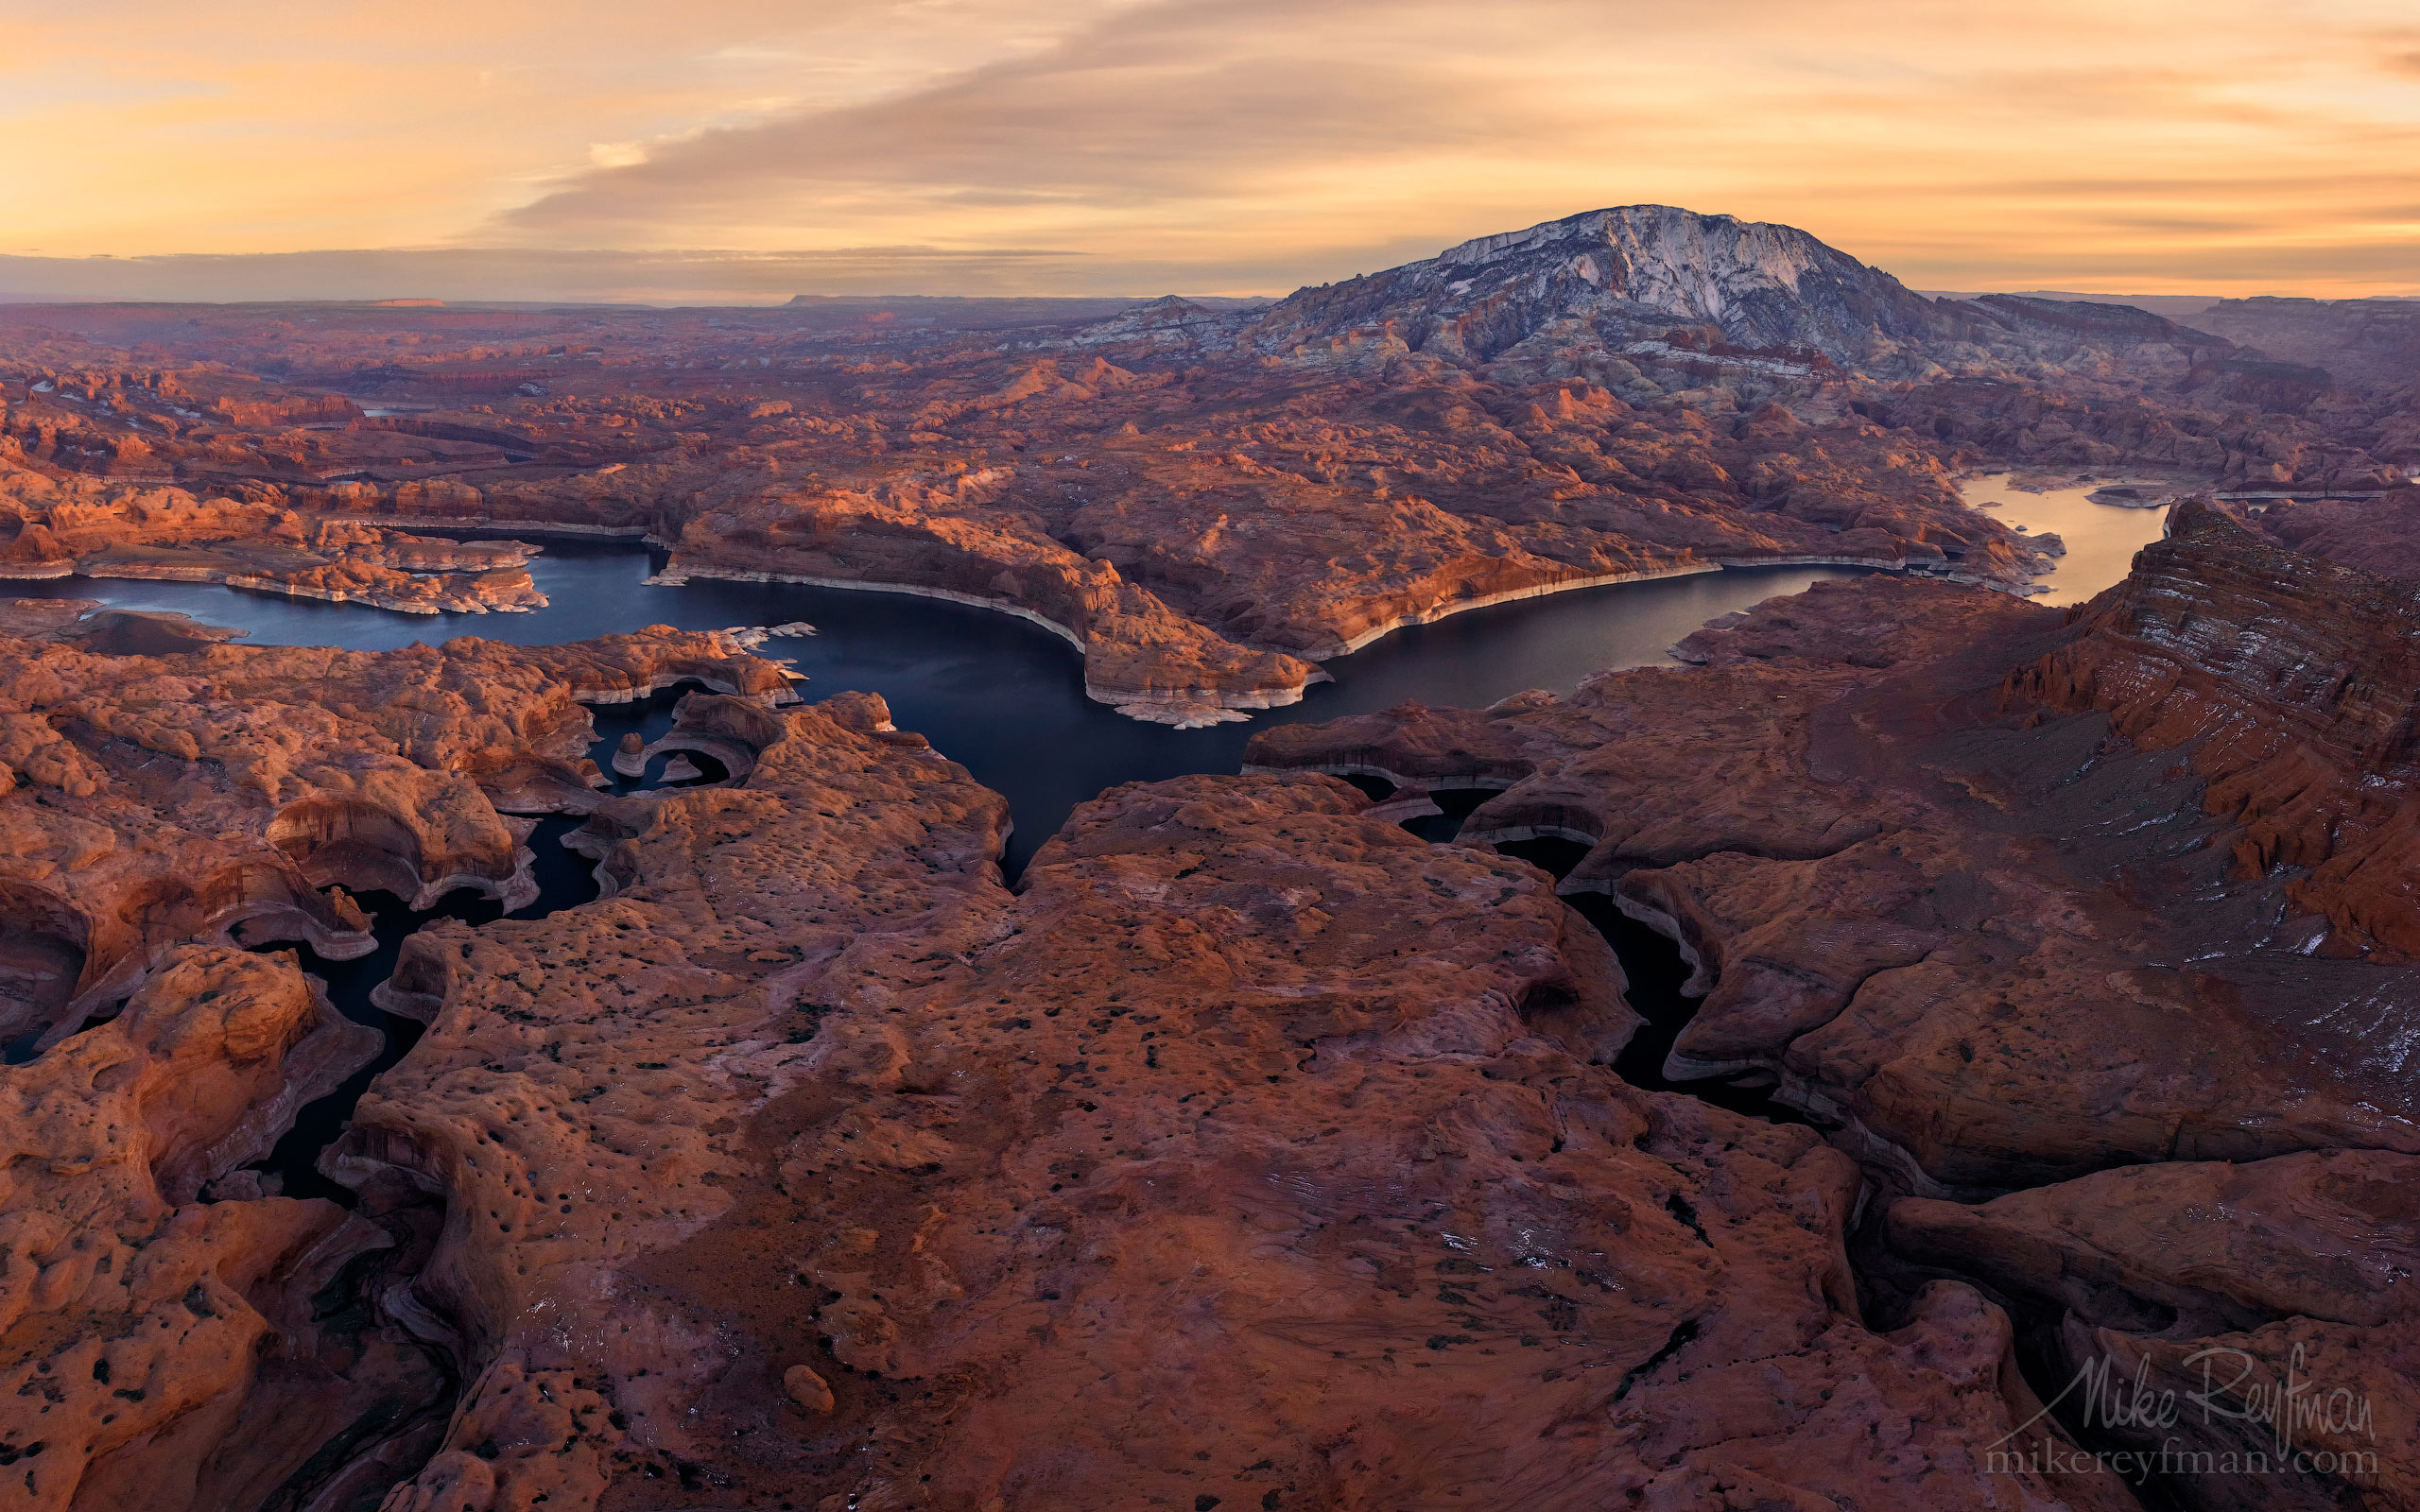 Reflection Canyon, Hidden passage Canyon, Colorado River and Navajo Mountain. Lake Powell, Glen Canyon NRA. Uta/Arizona, USA. Aerial 118-LP3_D8C9618-20-28-30.jpg - Lake Powell, Glen Canyon NAR. Colorado and Sun Juan Rivers. Utah/Arizona, USA  - Mike Reyfman Photography